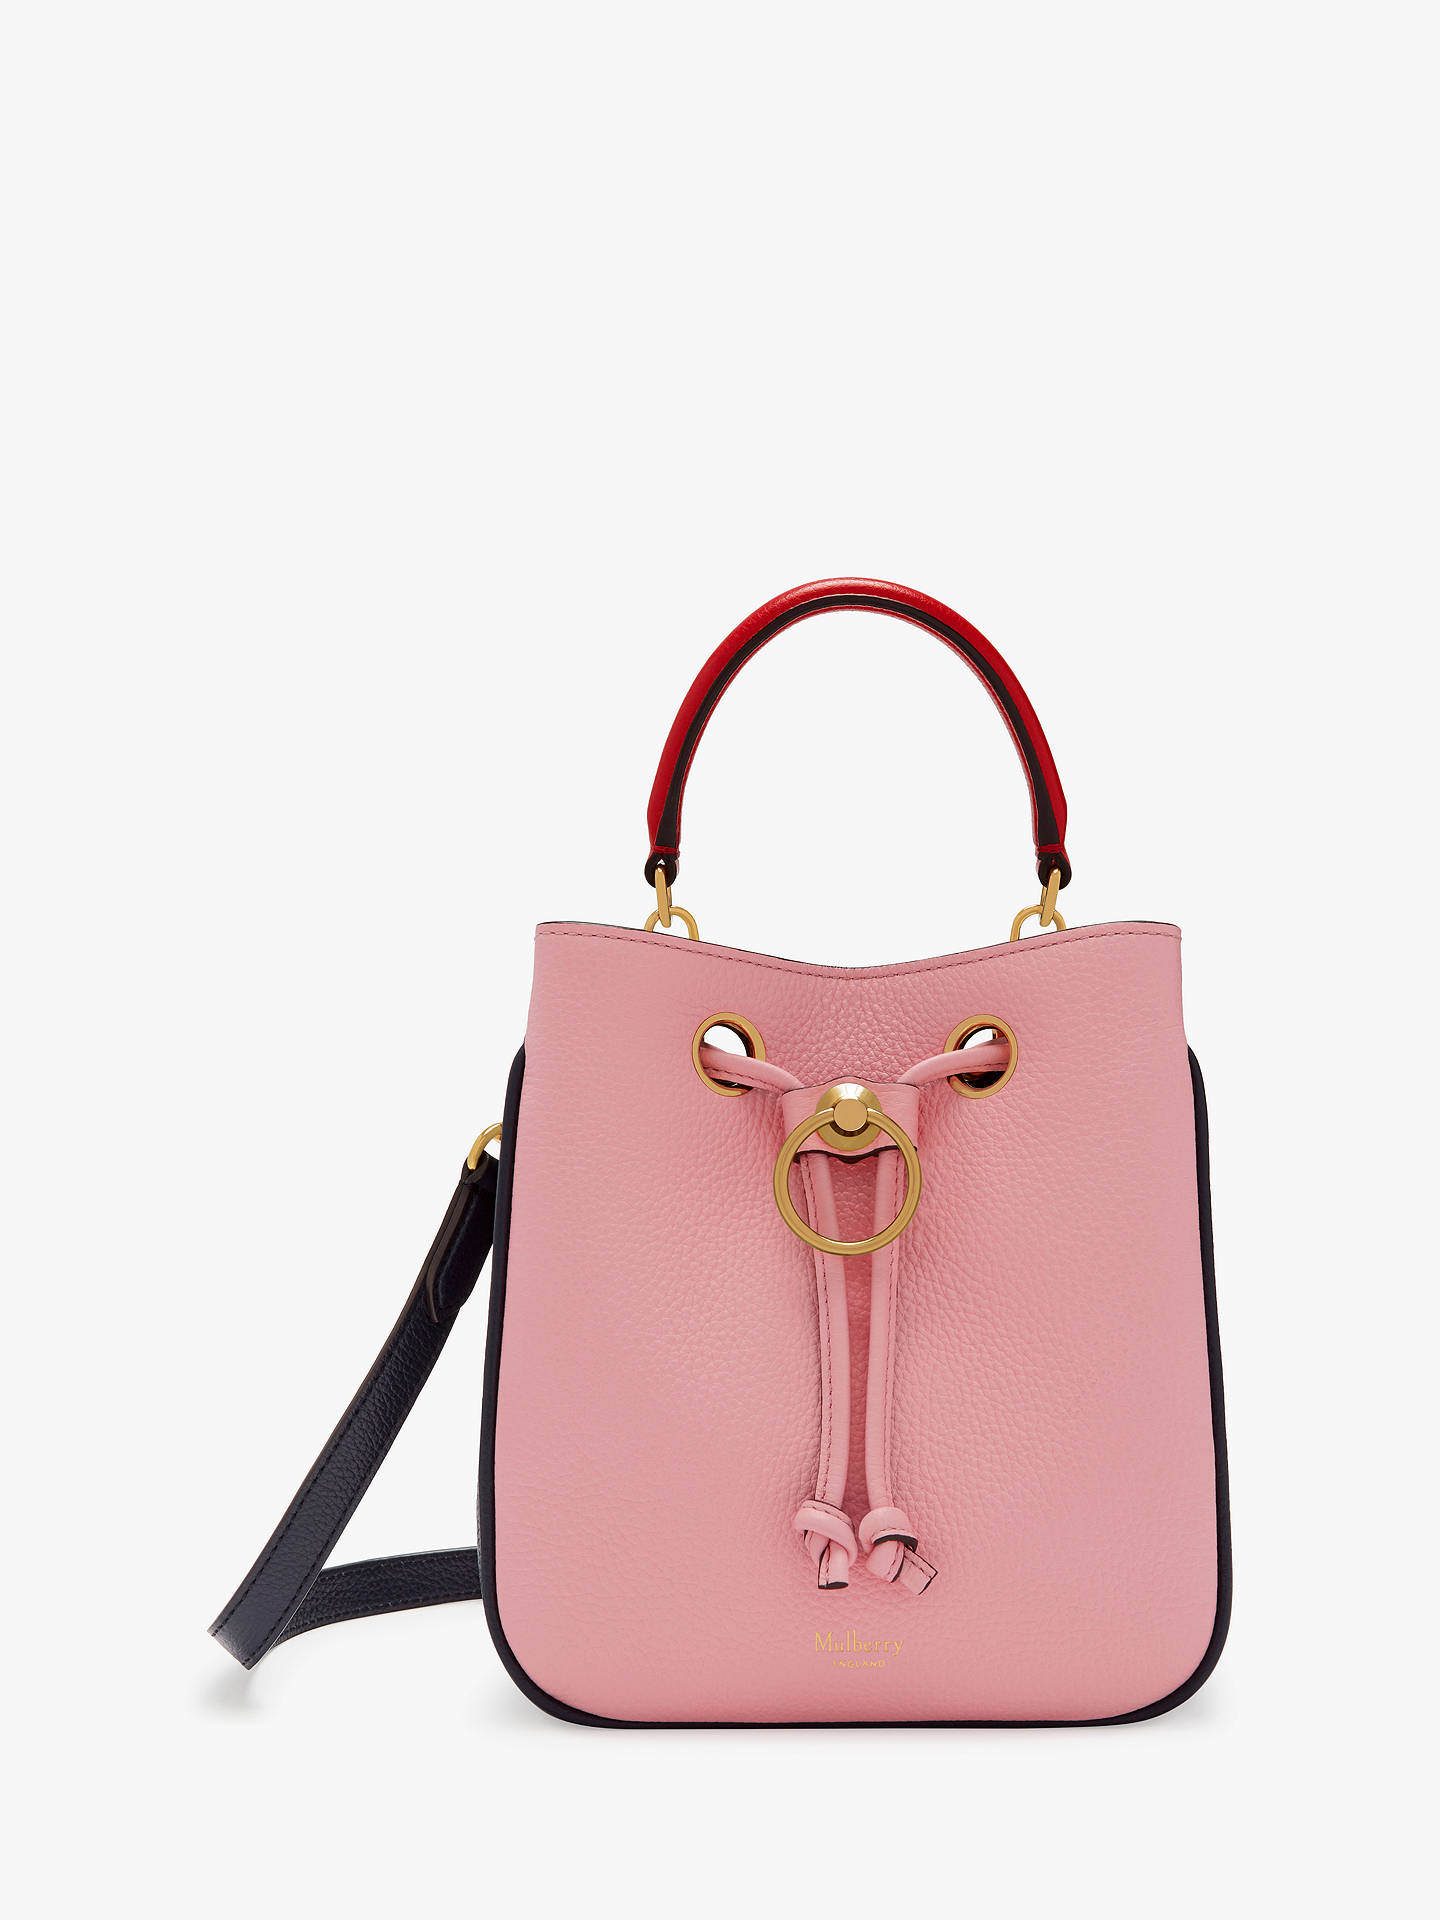 0b2df0e41d Buy Mulberry Small Hampstead Piped Classic Grain Leather Shoulder Bag,  Sorbet Pink Online at johnlewis ...